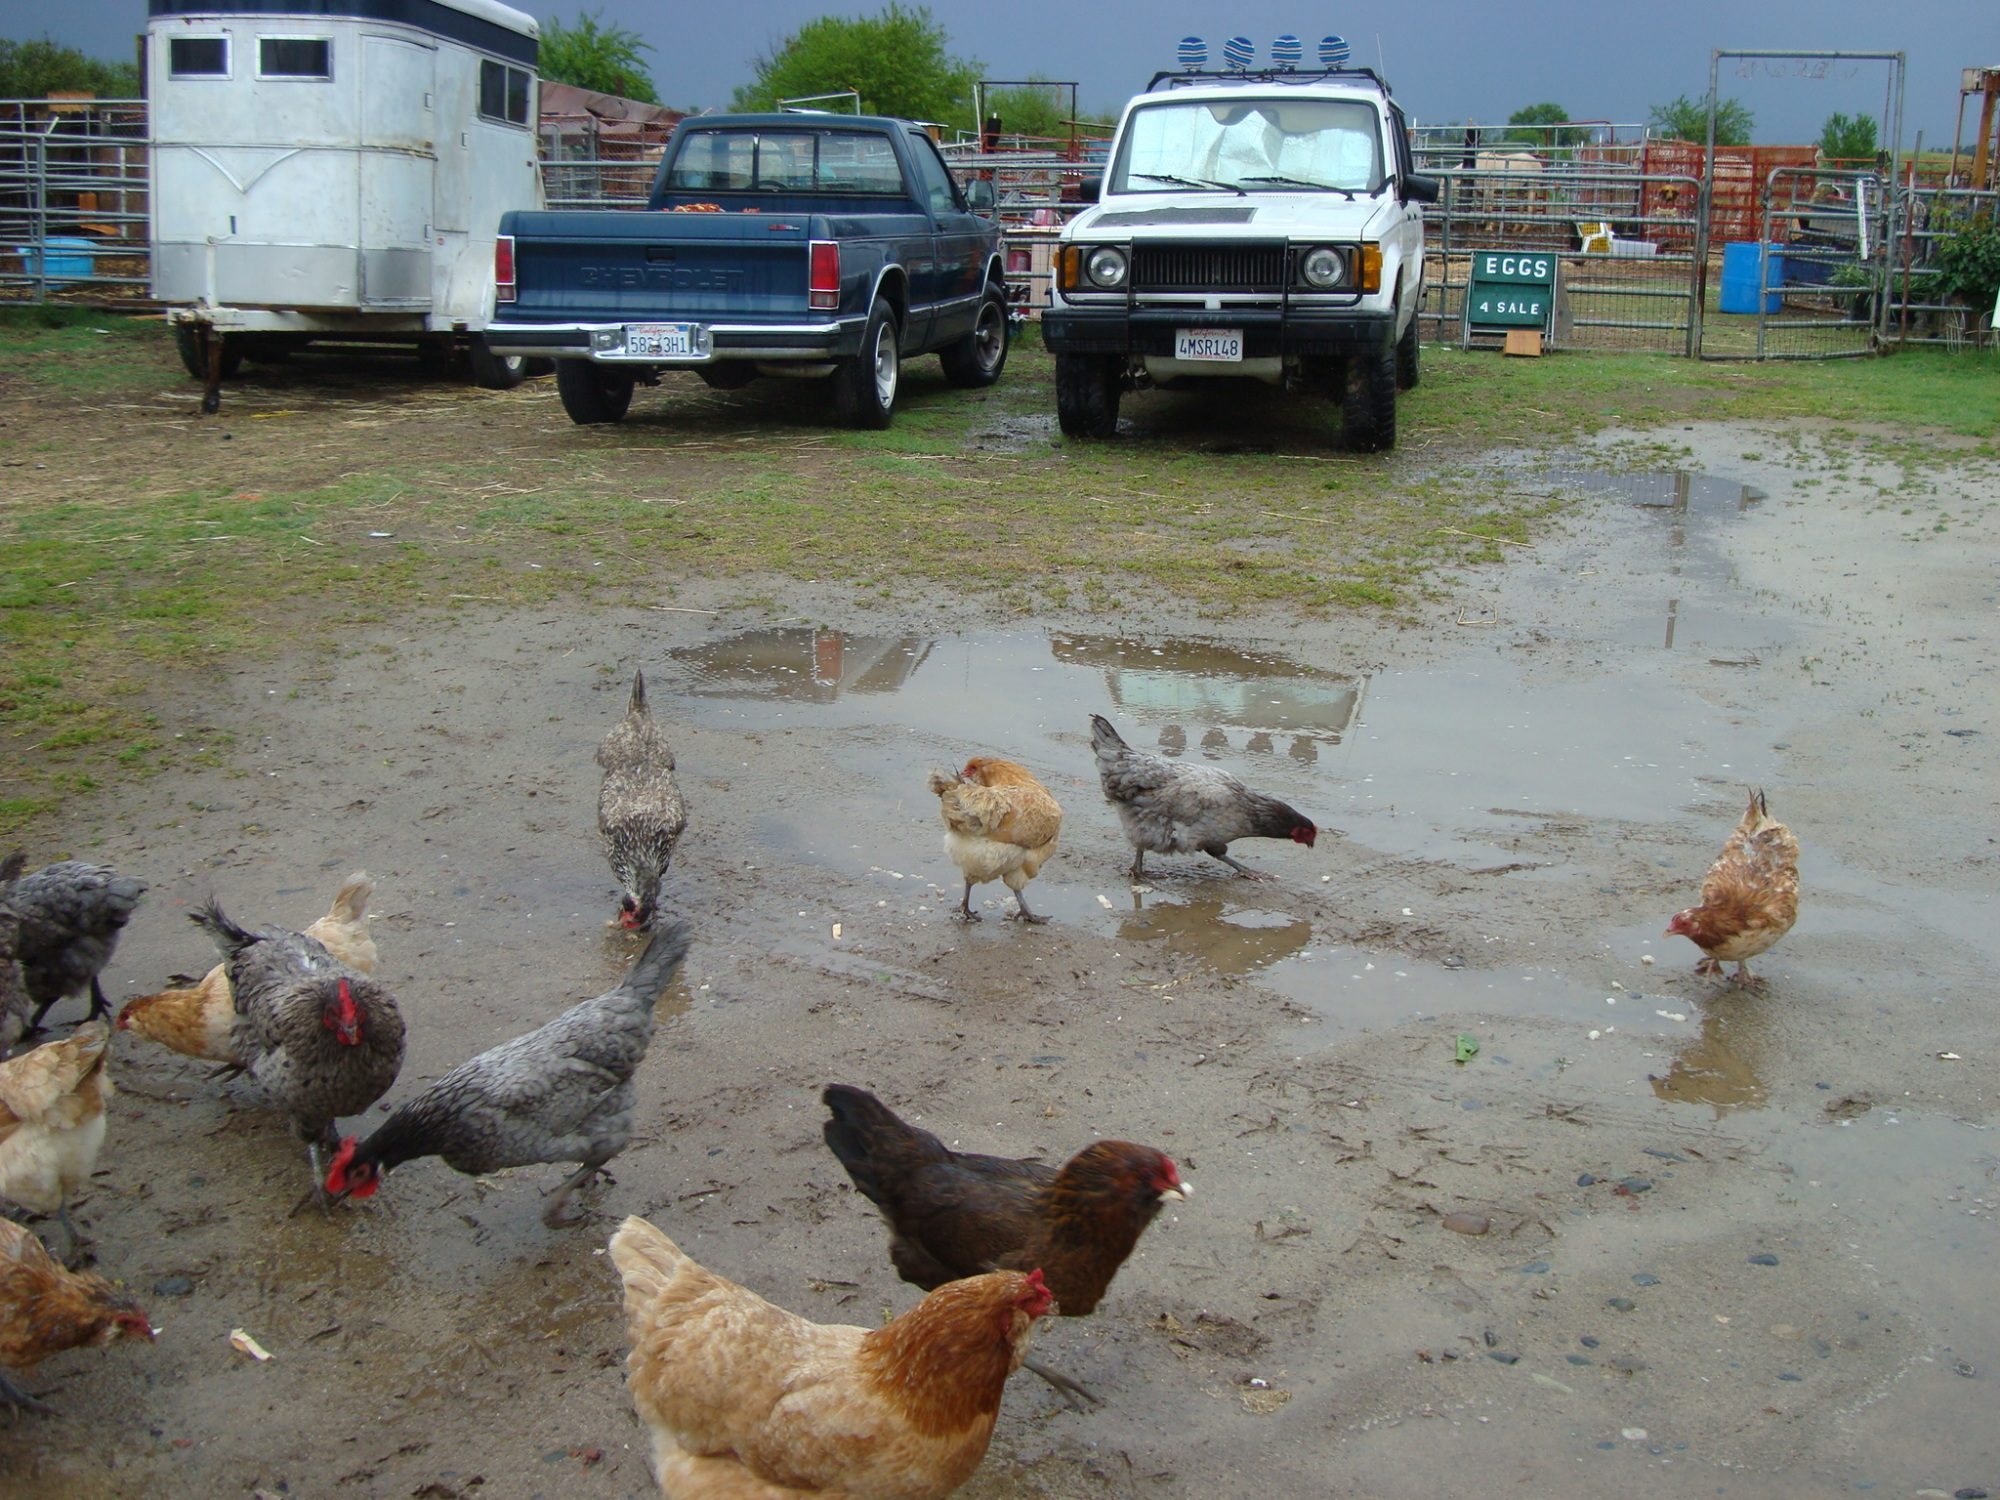 Sueg4332's photos in Contest #14 - Wet Poultry Contest for the 6th Annual BYC Easter Hatchalong!